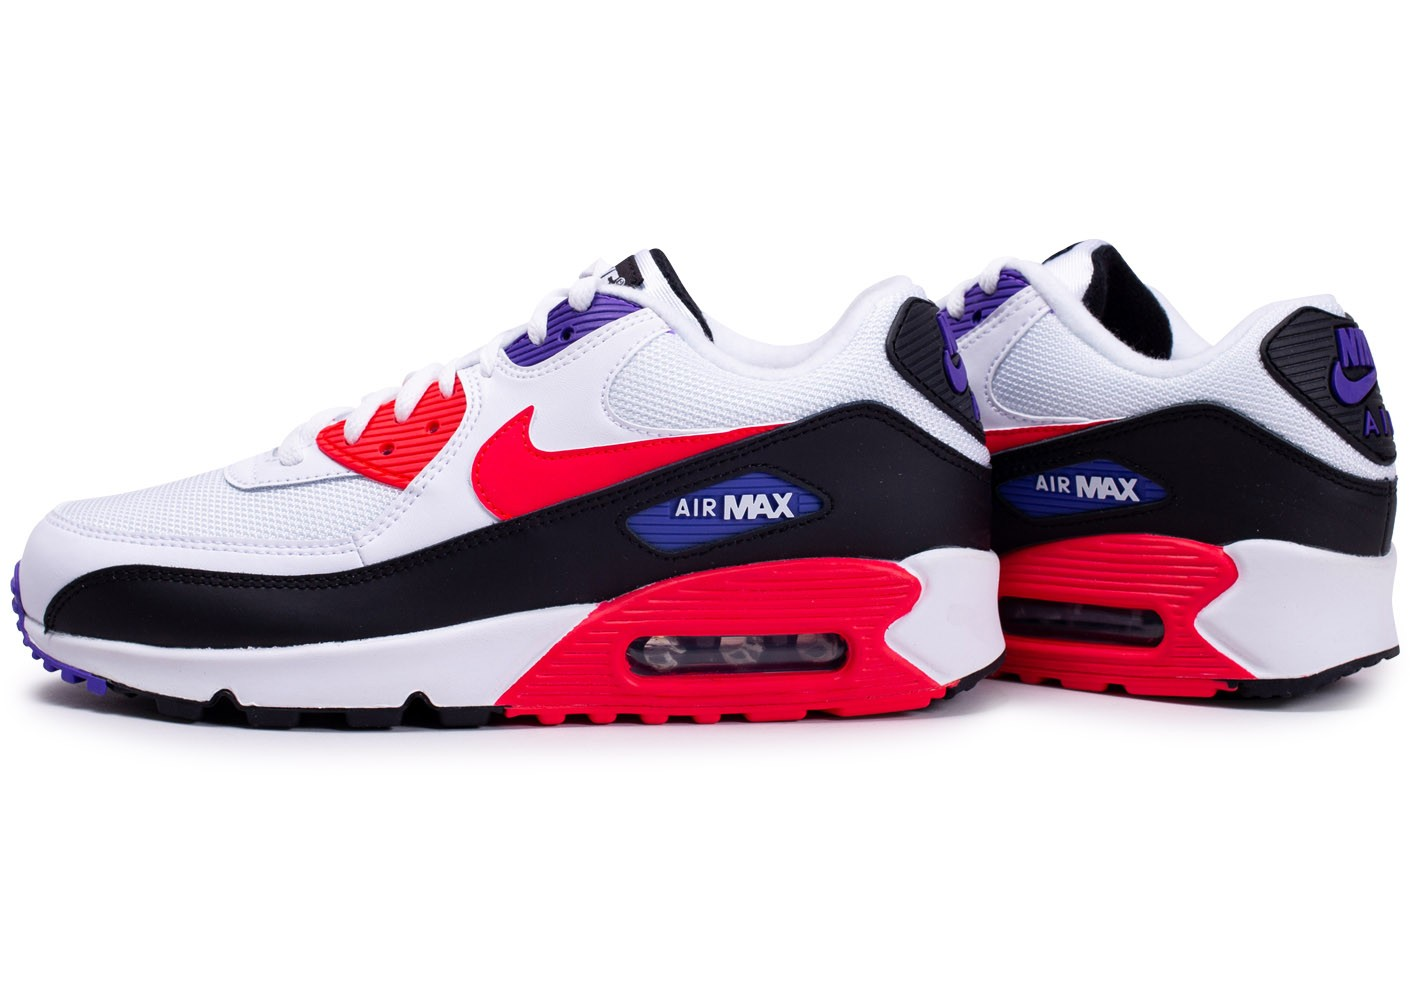 Nike Air Max 90 Essential blanc rouge violet Chaussures